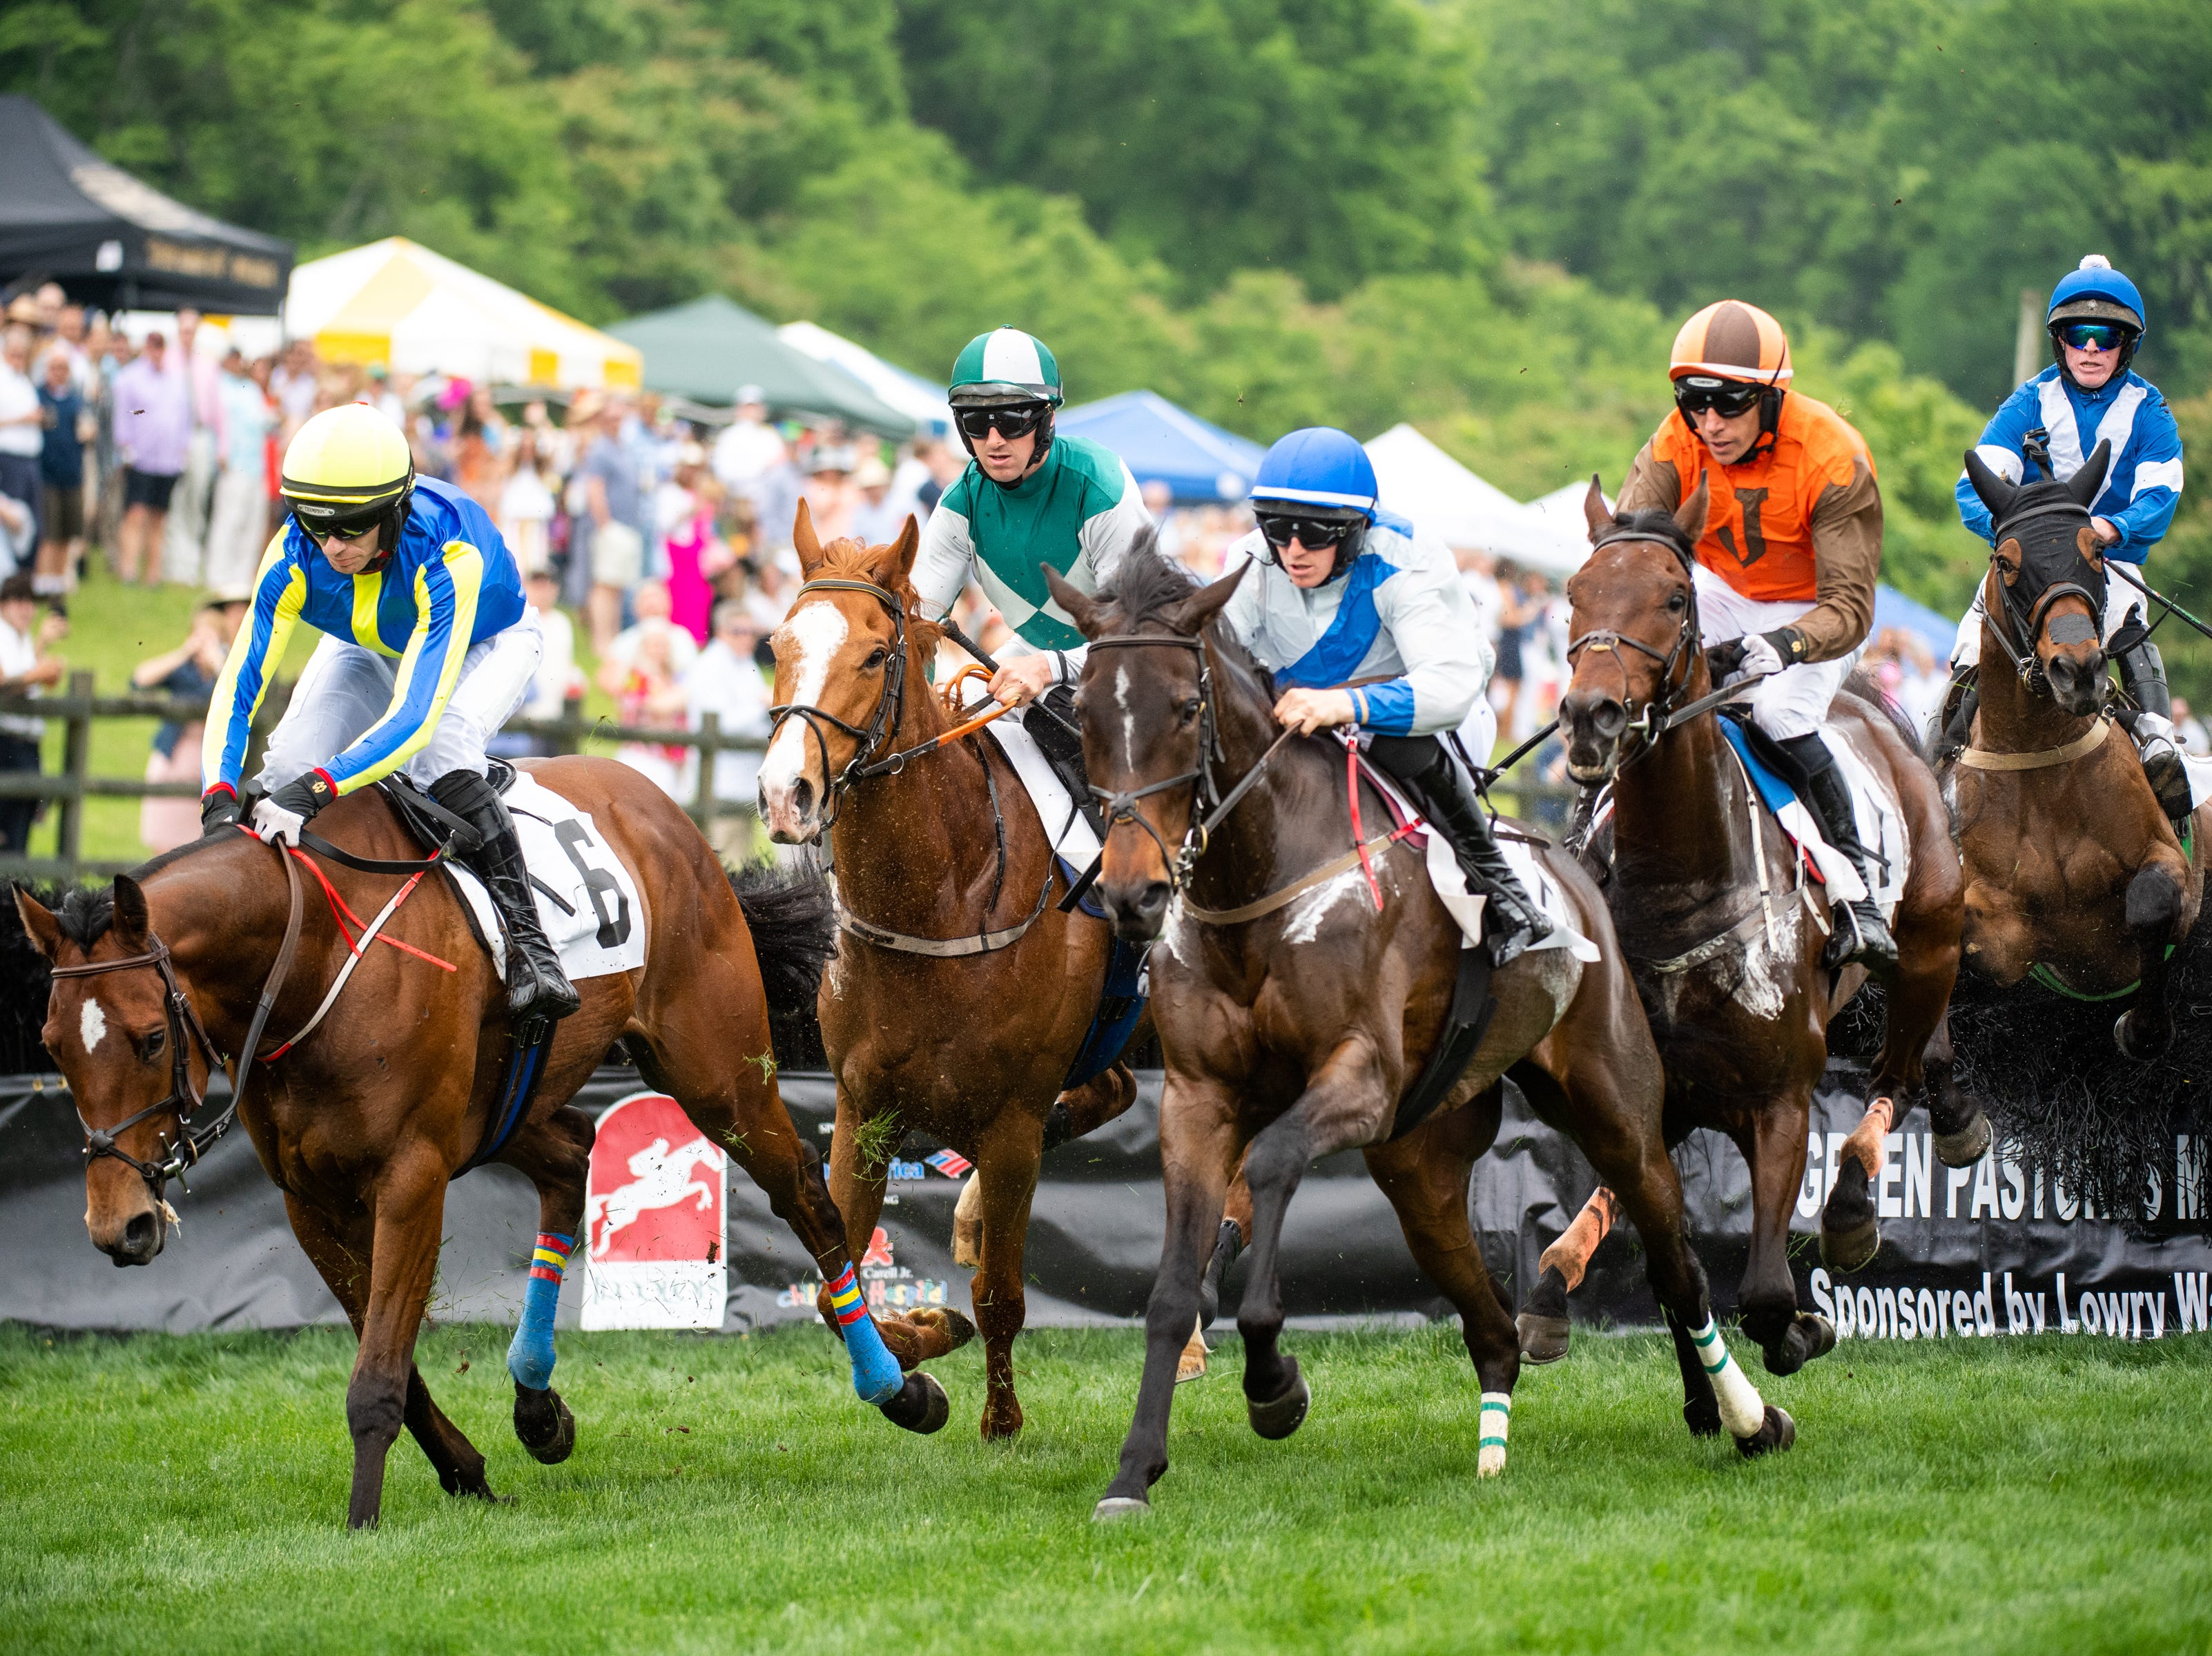 Horses and jockeys complete a jump during the first race of the Iroquois Steeplechase at Percy Warner Park Saturday, May 11, 2019, in Nashville, Tenn.